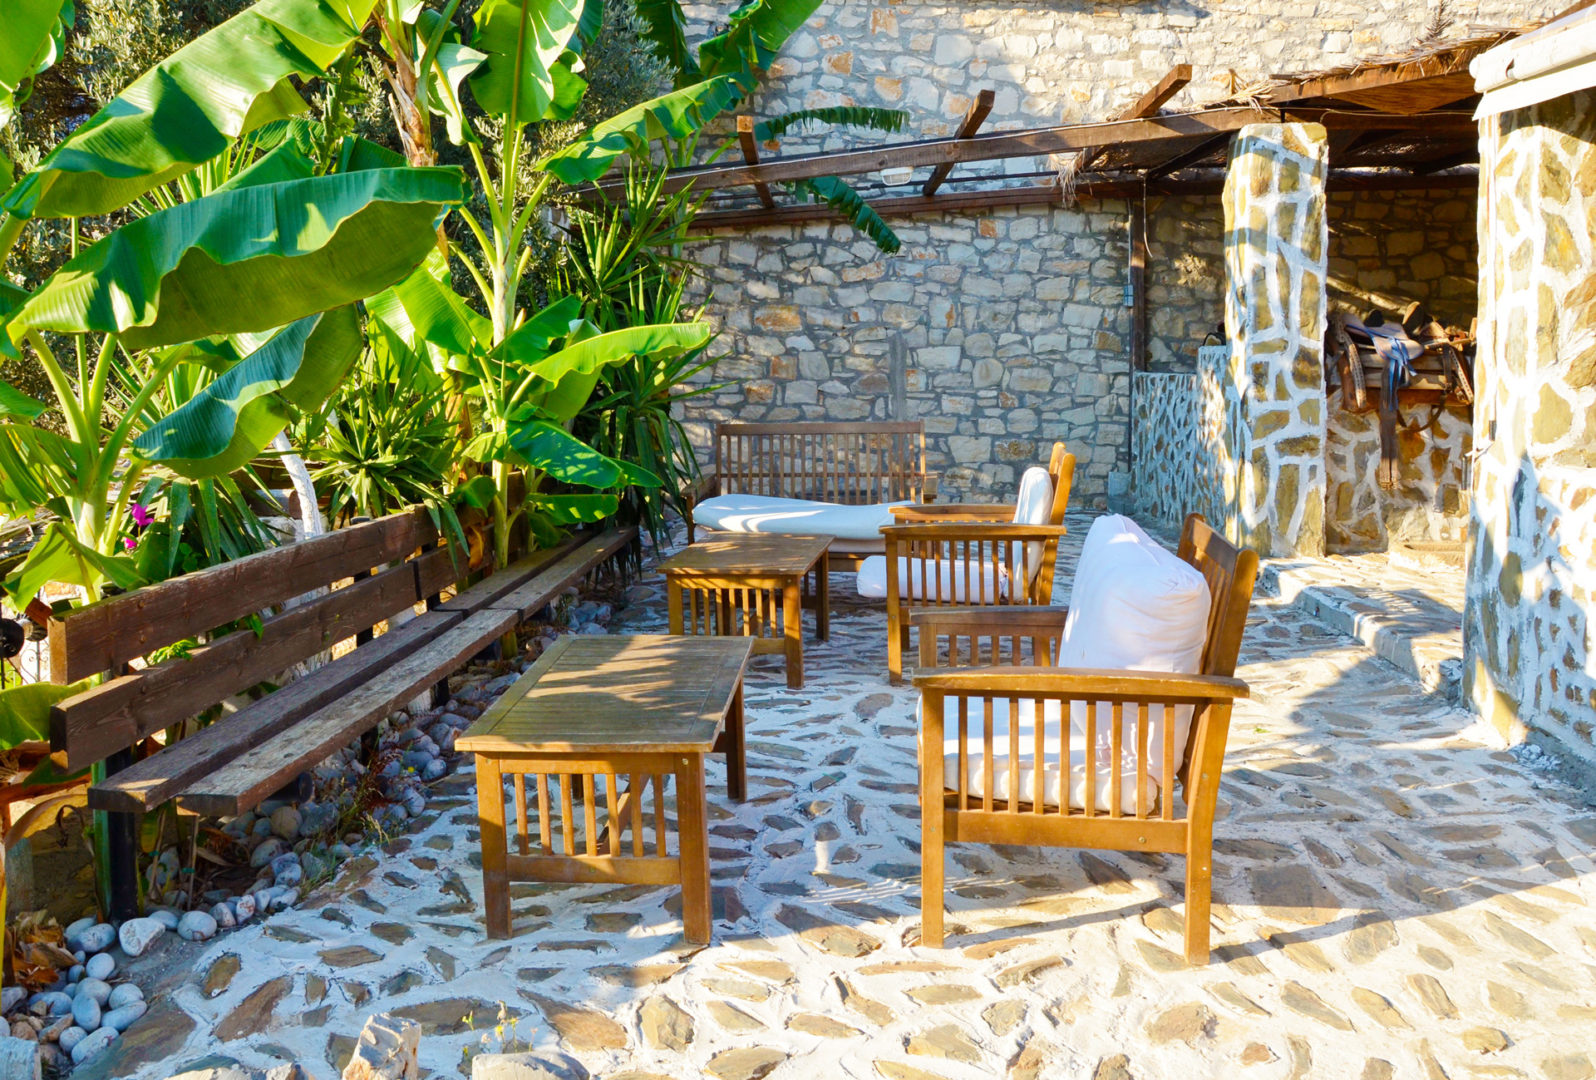 Hotel in Bali Crete - Stone Village - Outdoors Sitting Area 2